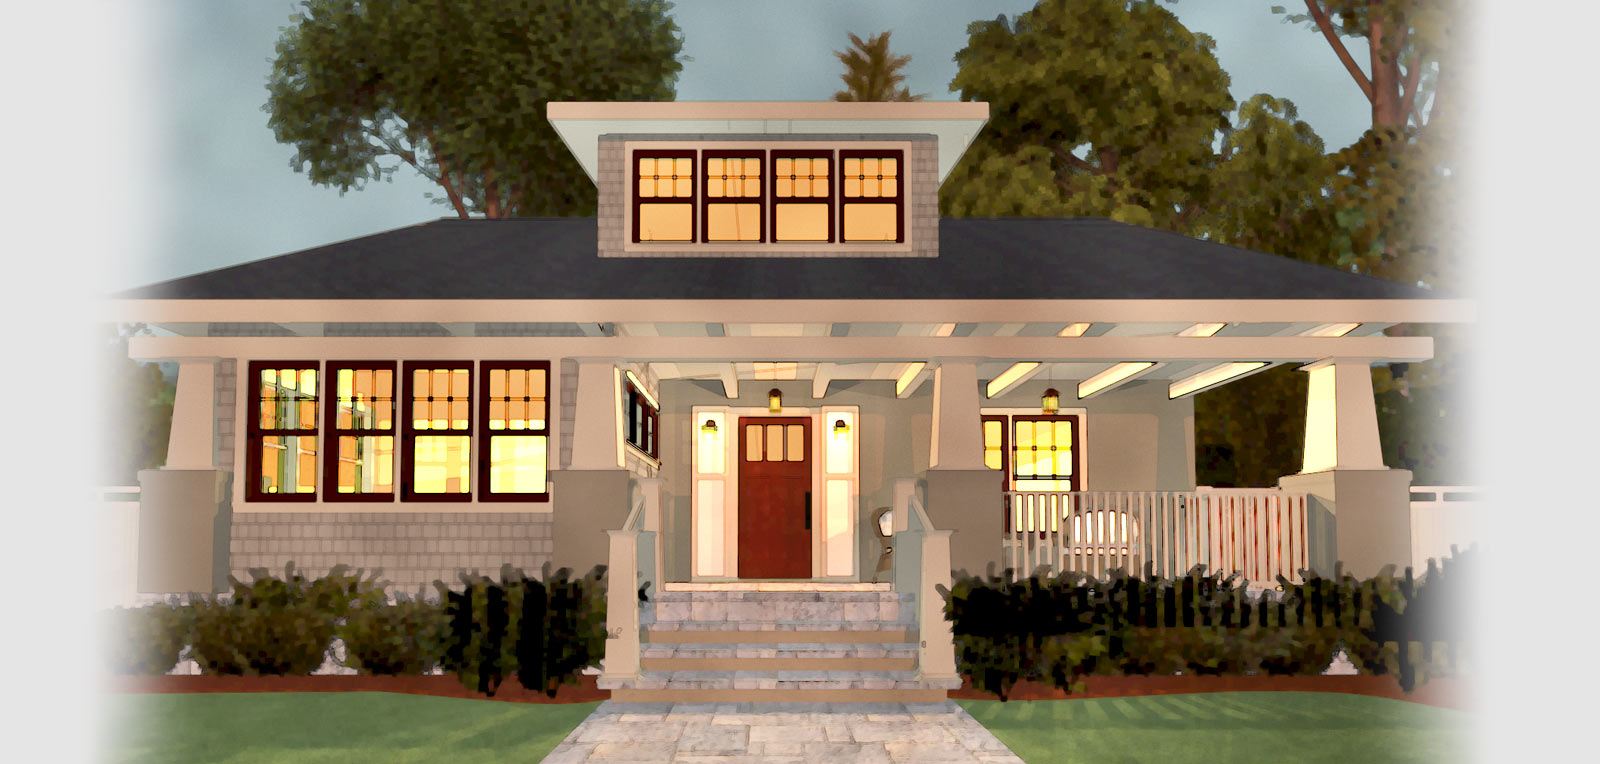 Water color rendering of a front entry porch